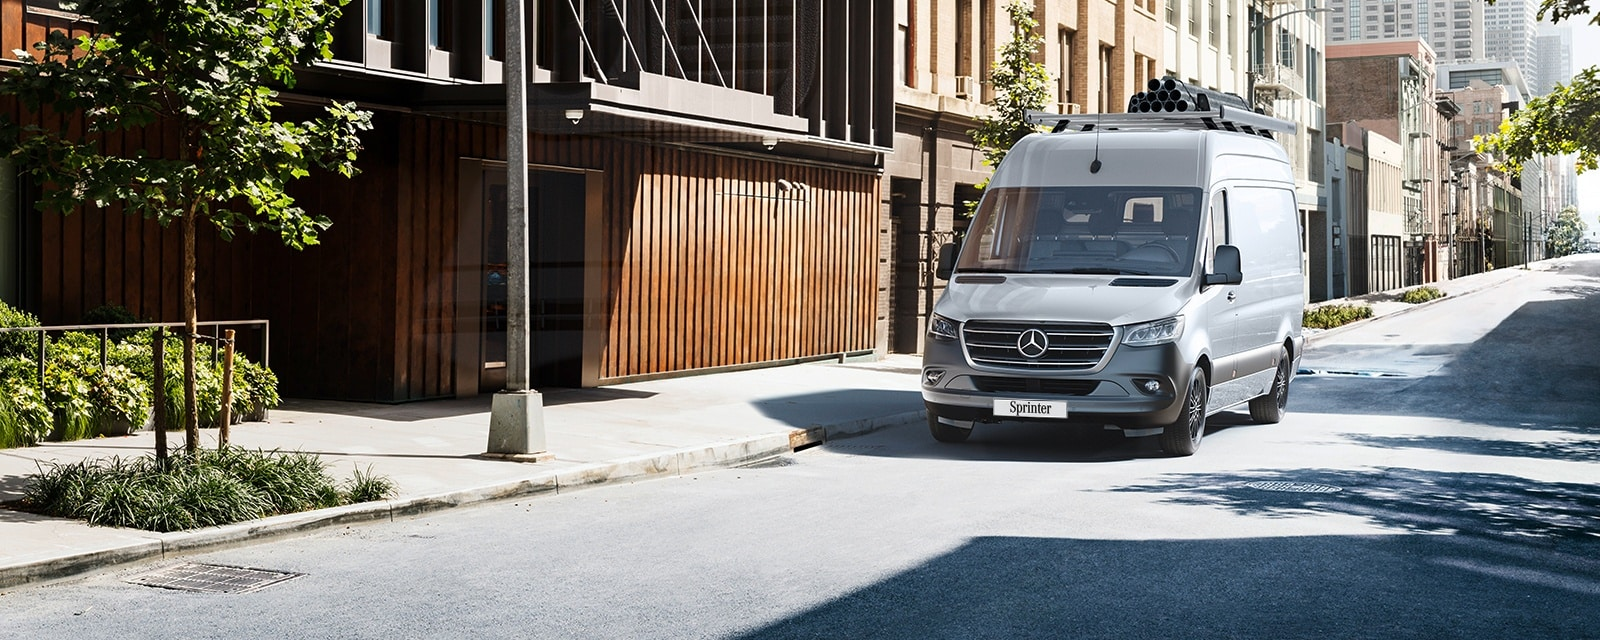 Mercedes-Benz Sprinter Fourgon en argent.